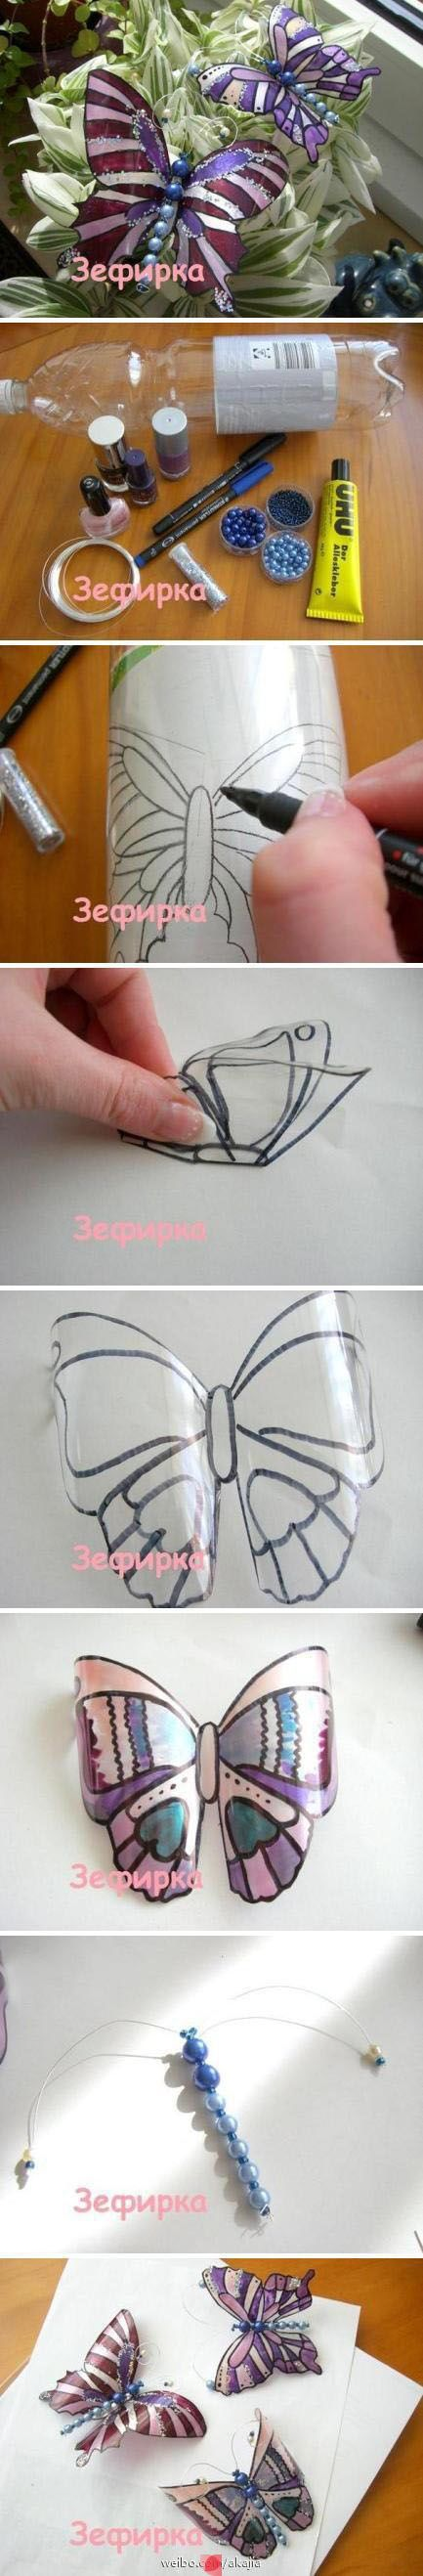 133 Best Wow Images On Pinterest Craft Crafts And For The Home Sakura Moth Hanger 160 Gr Recyclye Water Bottles Make Butterlies